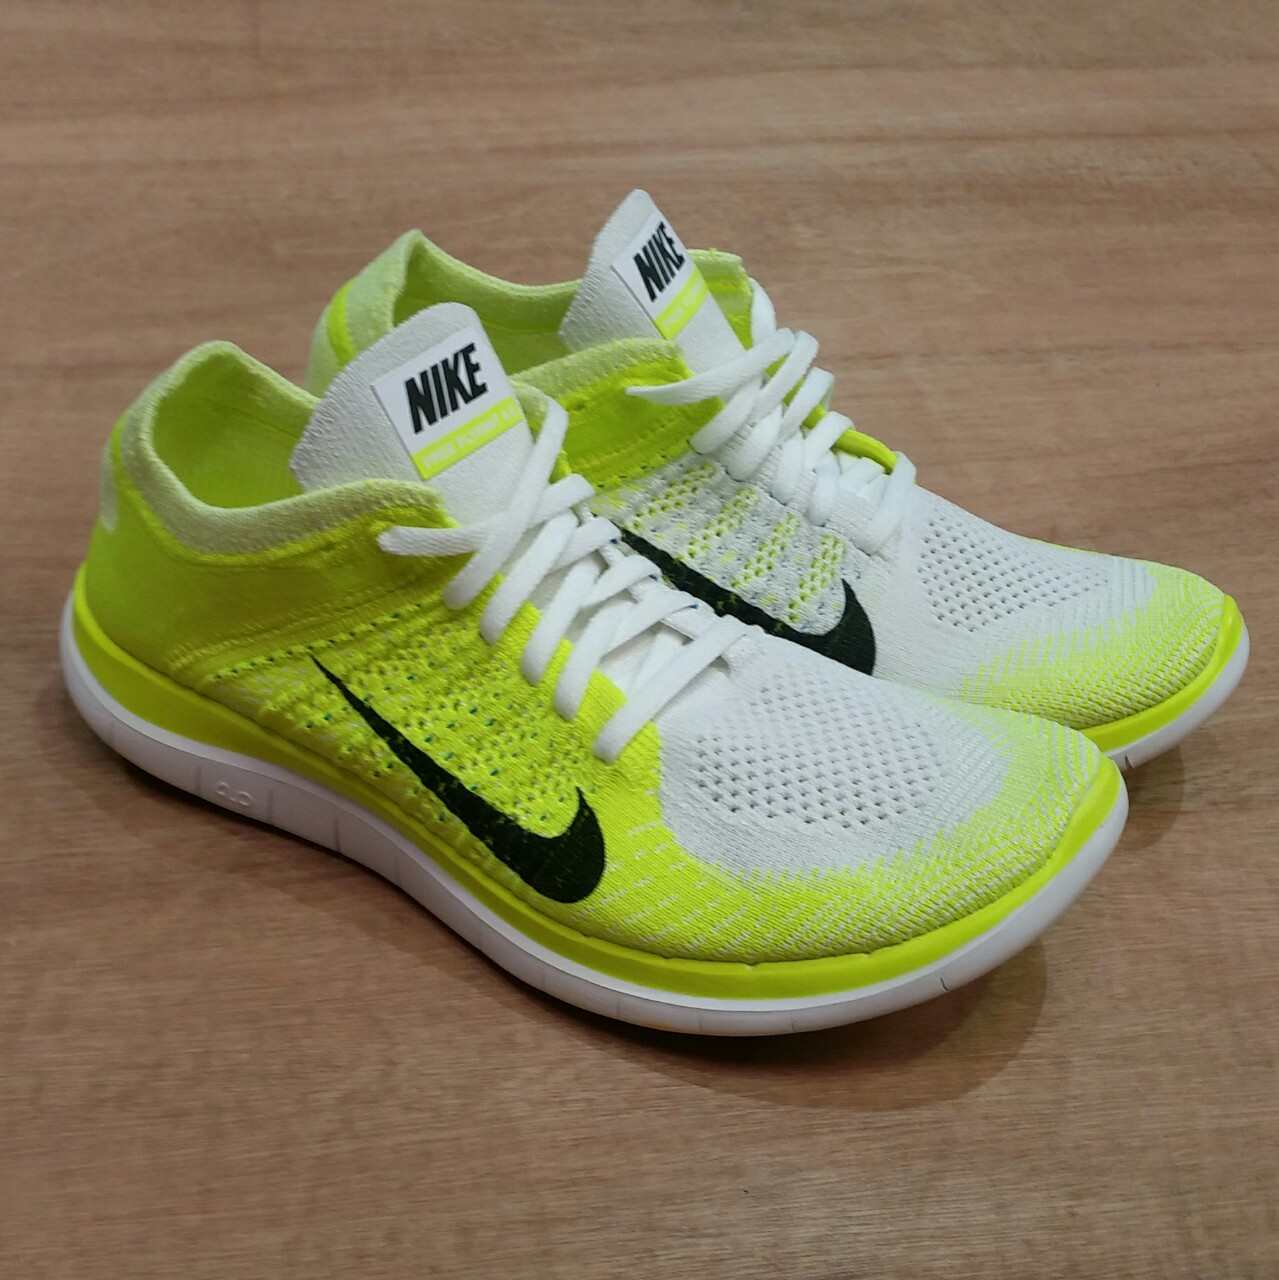 new product c48c0 4bf7e New Womens Nike Free 4.0 Flyknit Size UK 7 - (will... - Depop